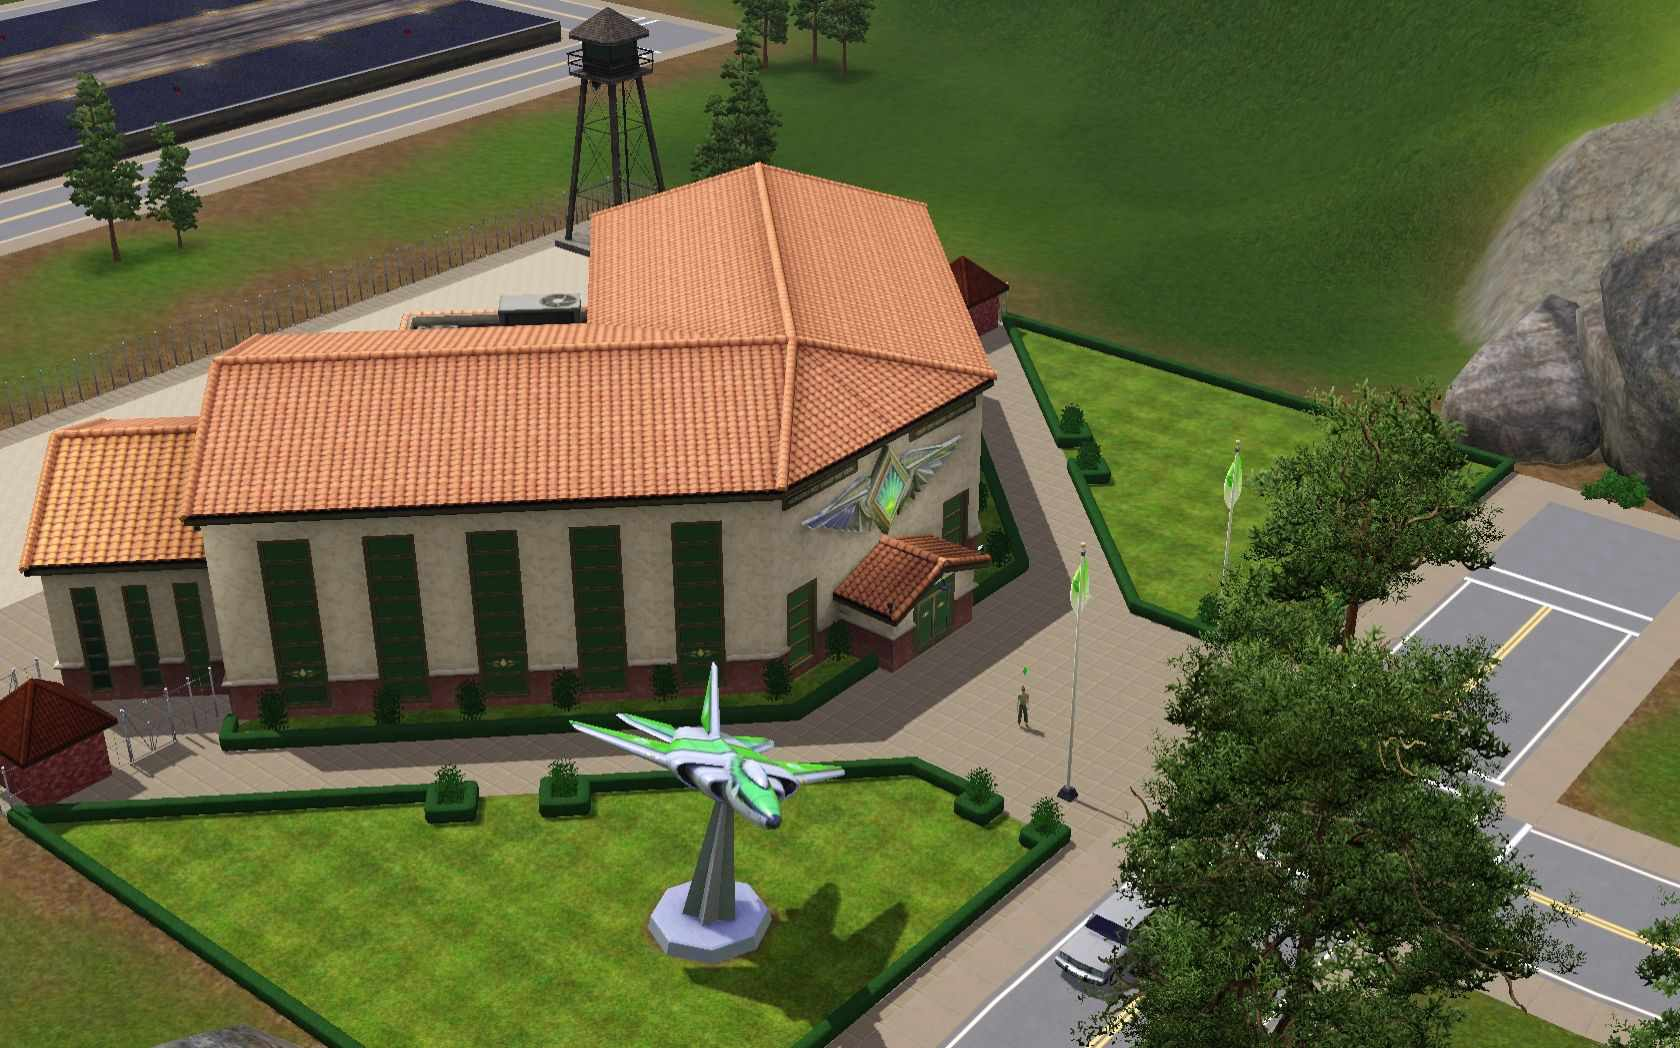 The Sims 3 Military - Become an Astronaut Lifetime Wish